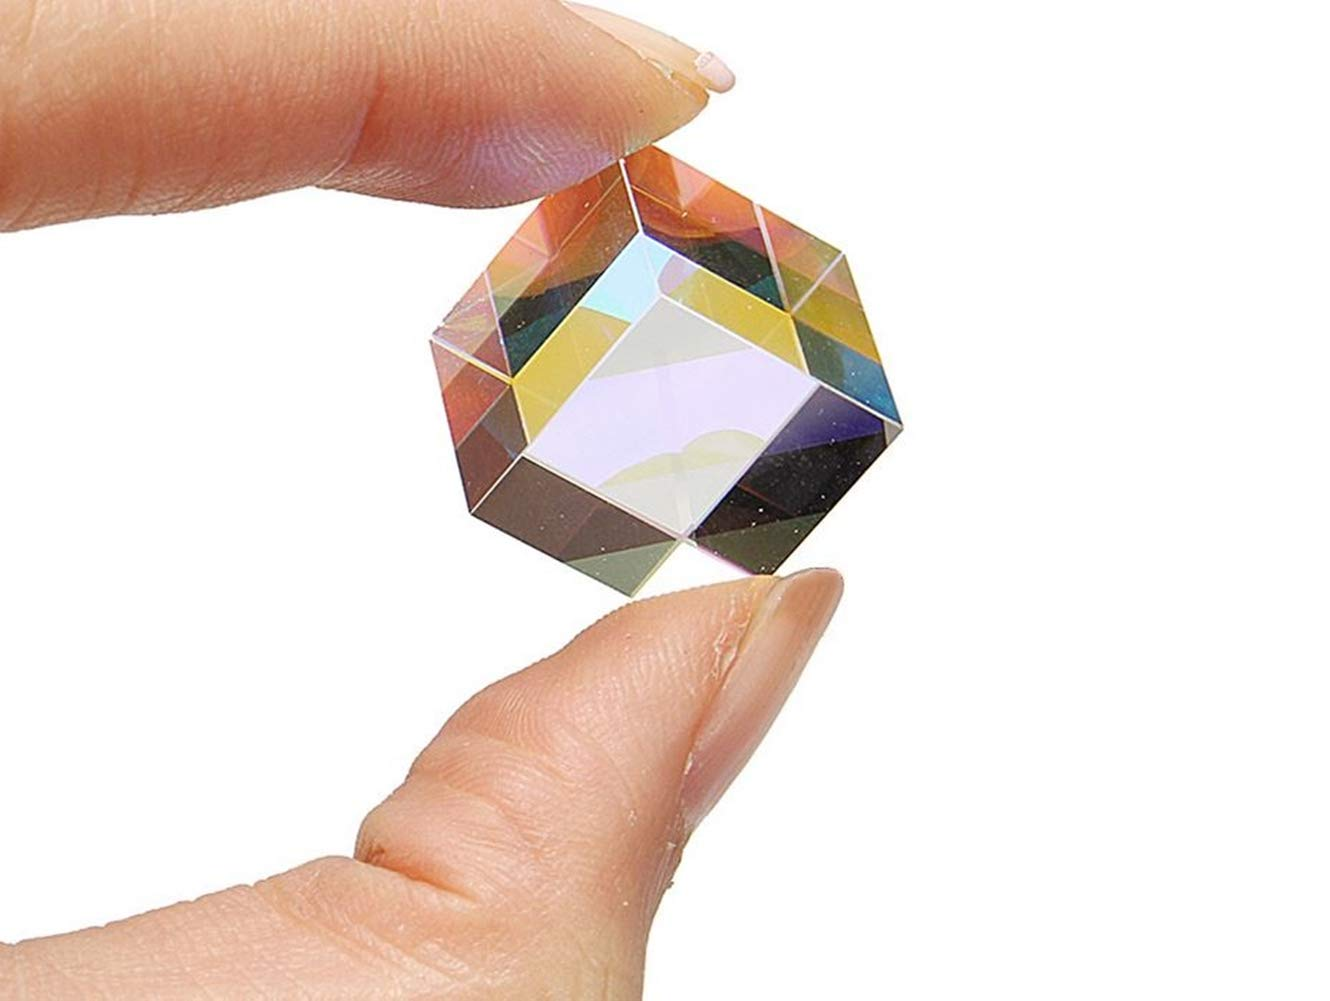 Dtacke Optical Glass Dispersion Prism X-Cube for Physics Teach Decoration Art Prism Glass Cube Prism Photography Rainbow Prism